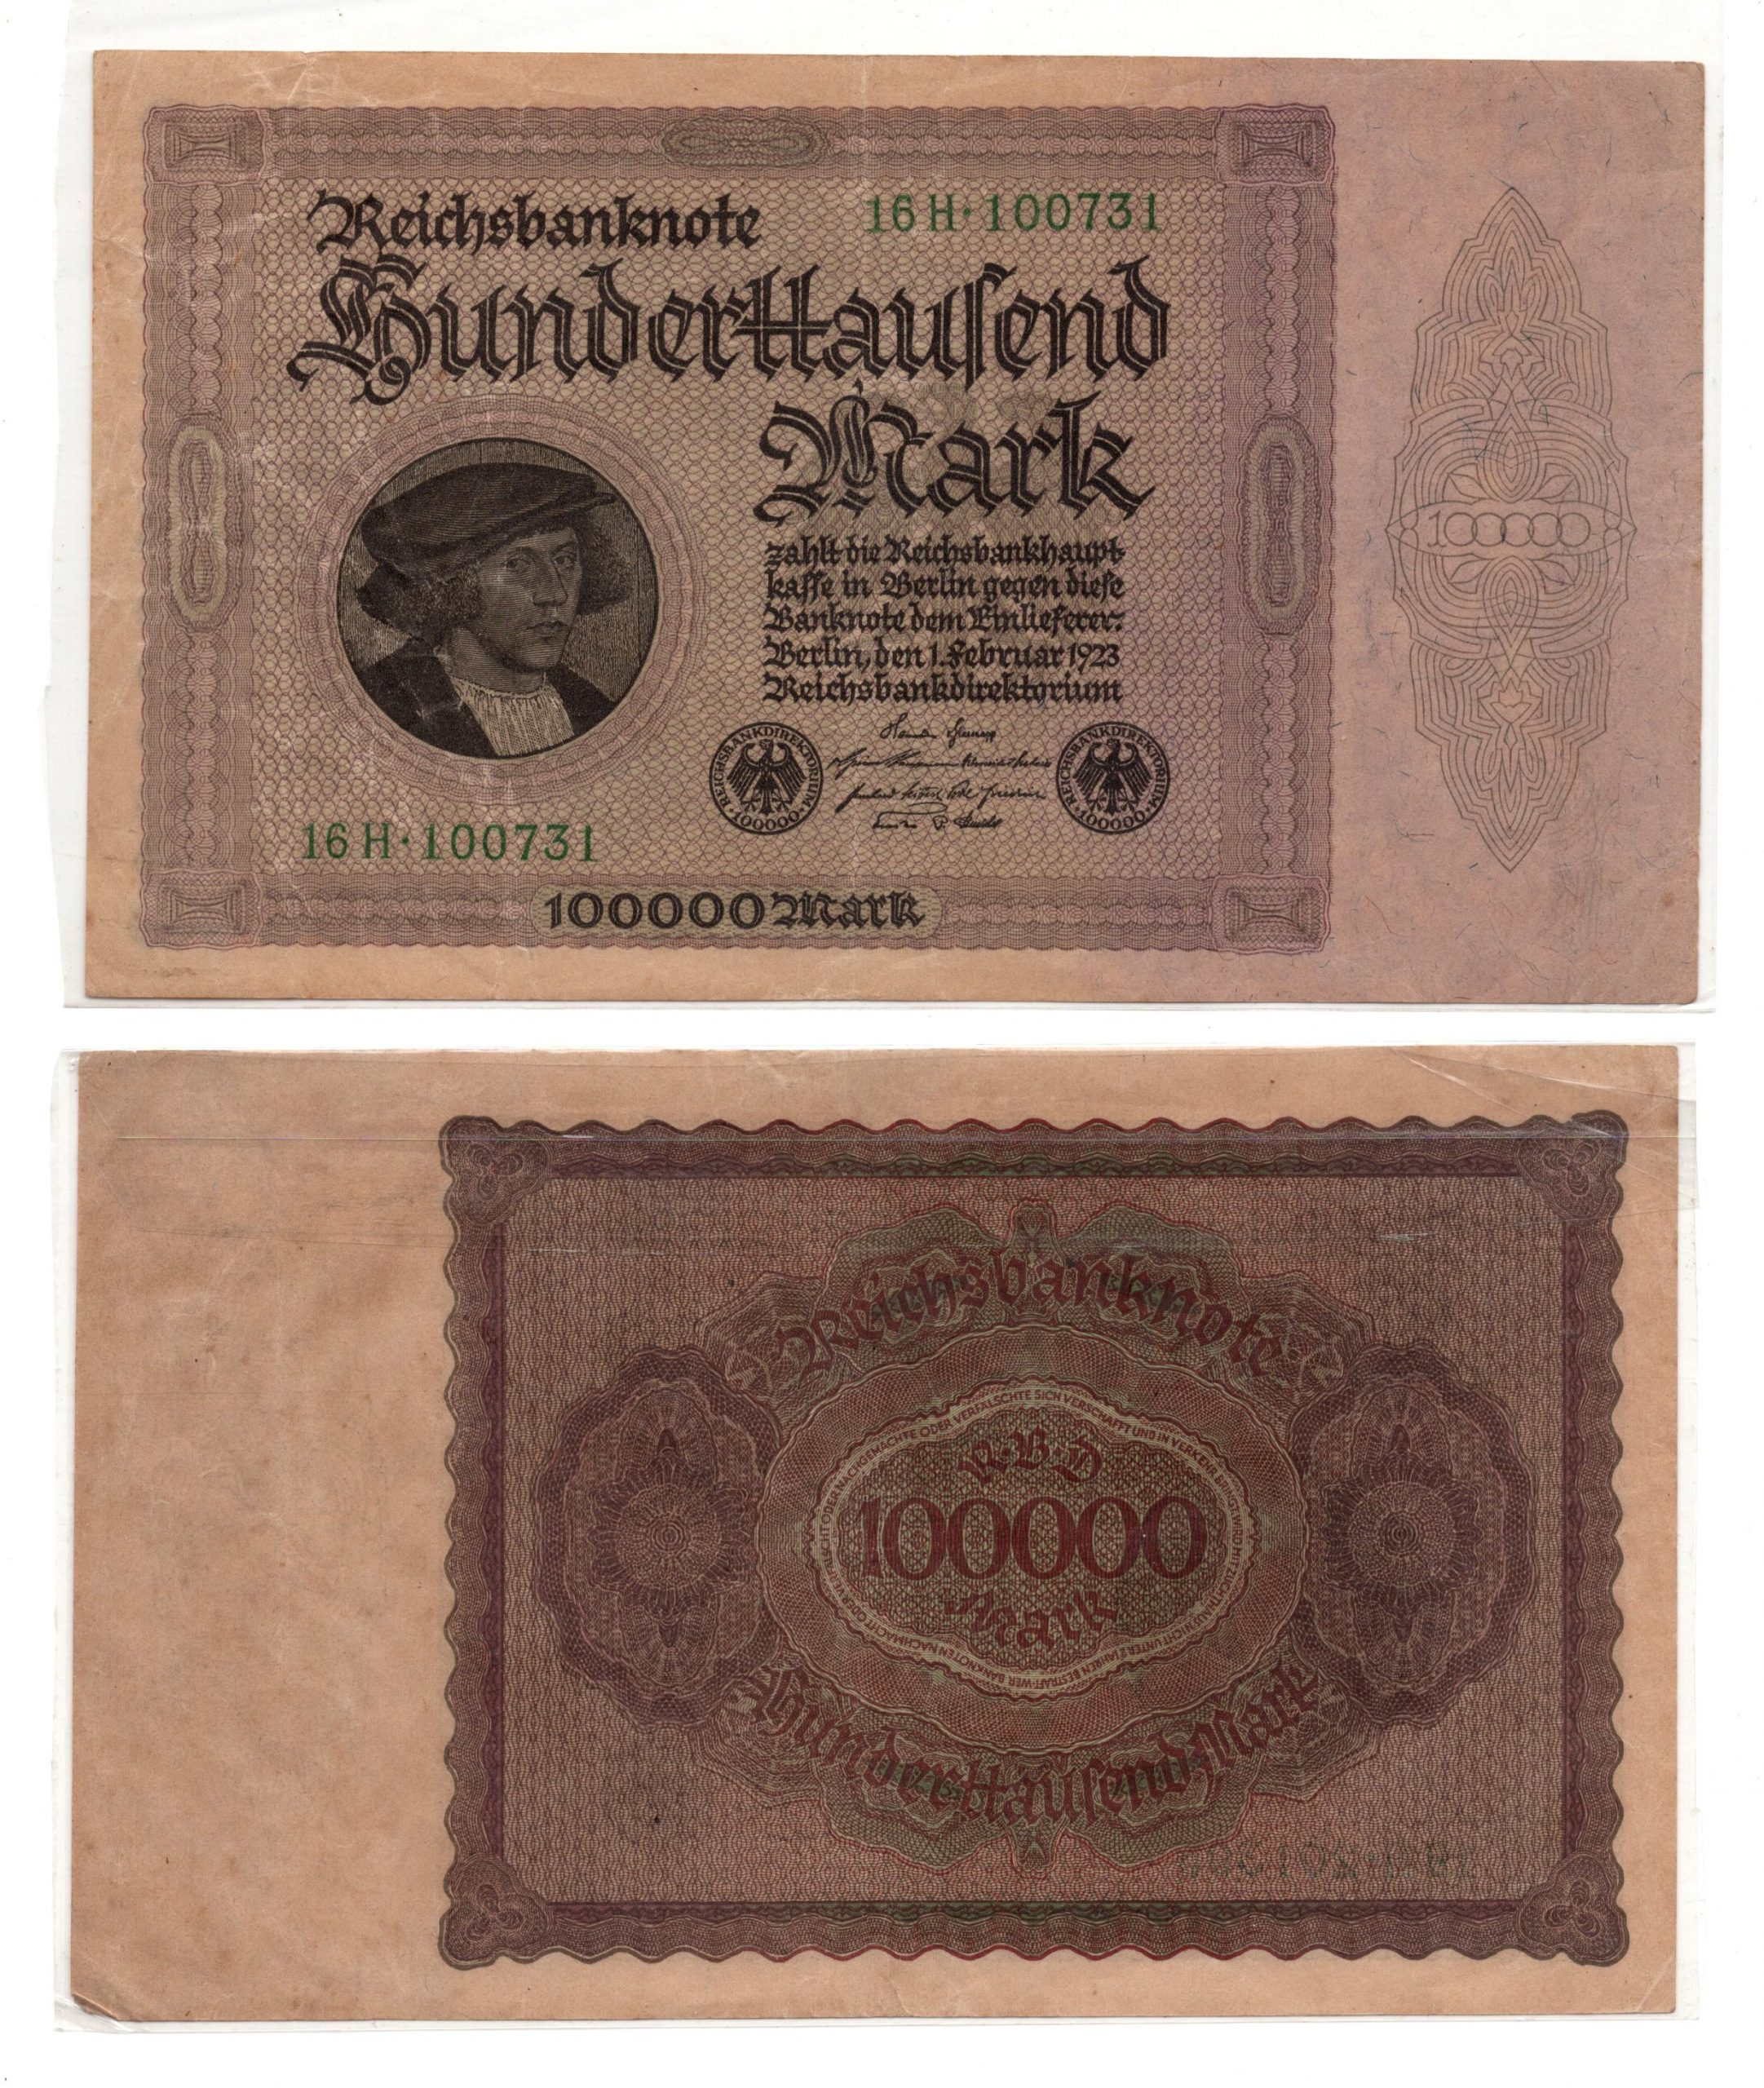 Germany 100000 mark 1923 banknote for sale